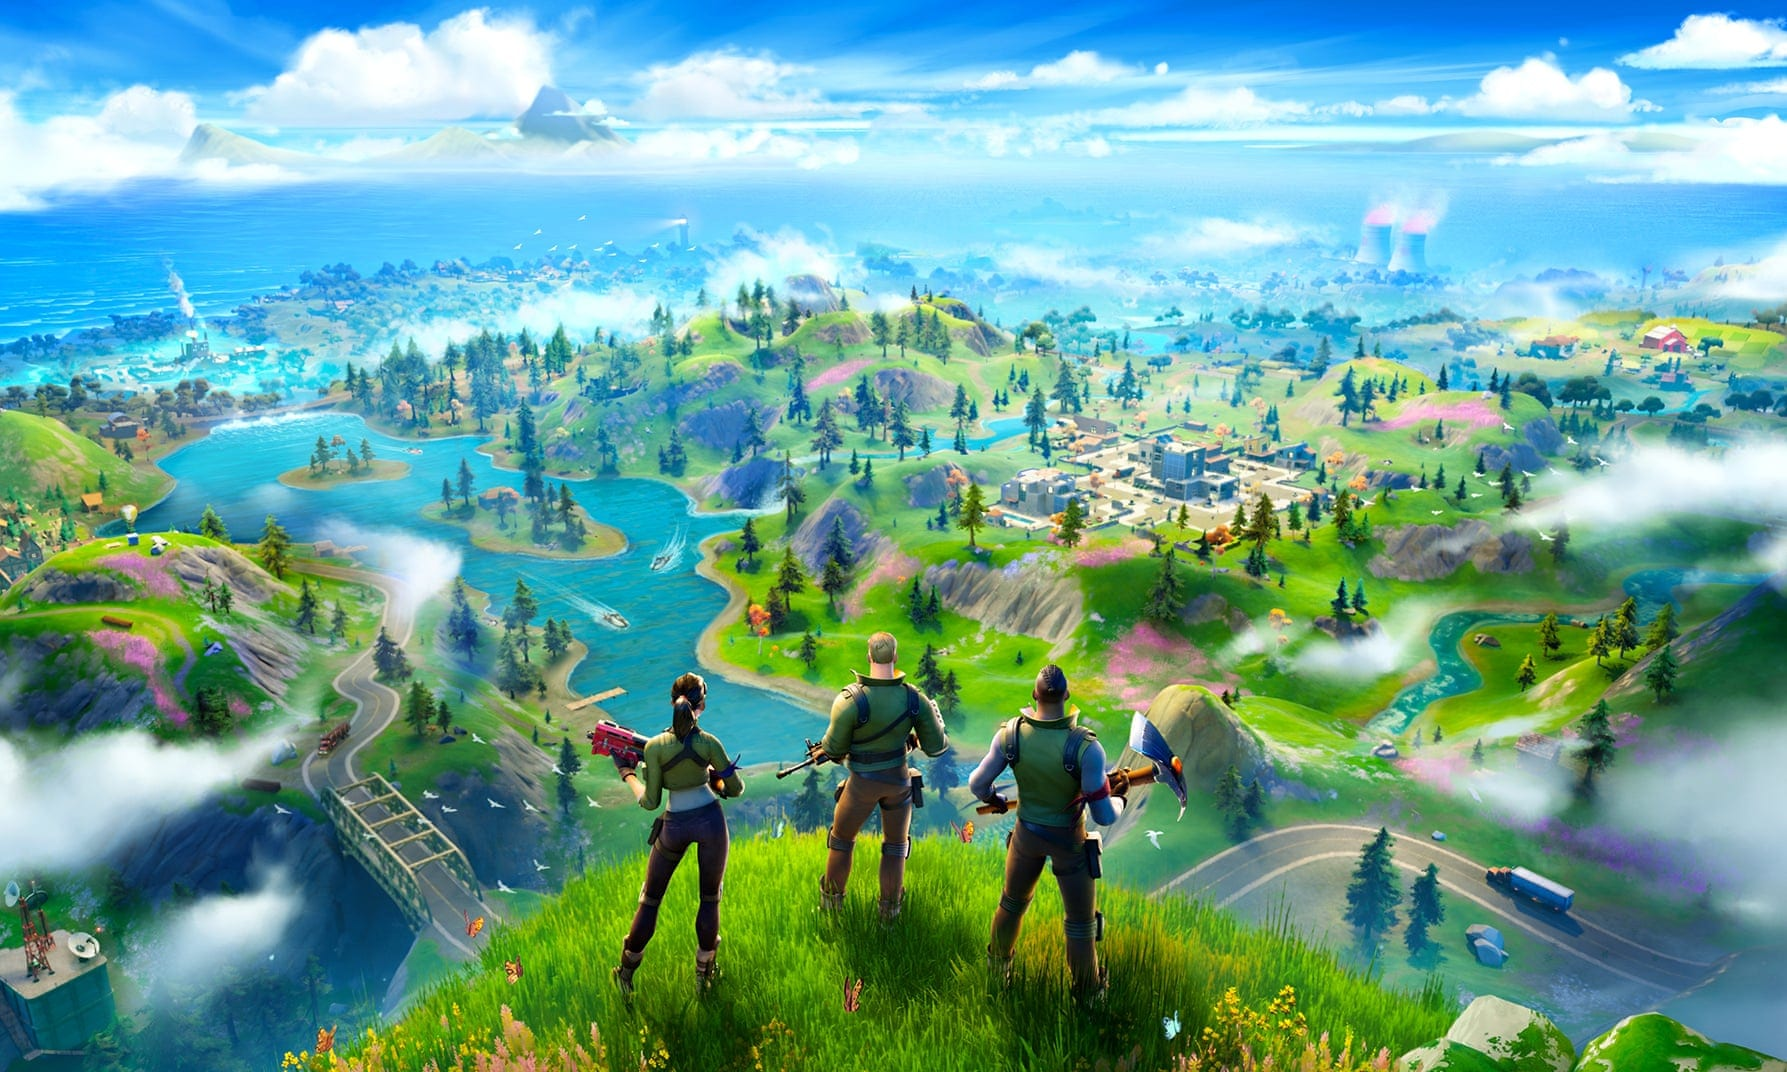 How Fortnite changed the game for mobile app developers